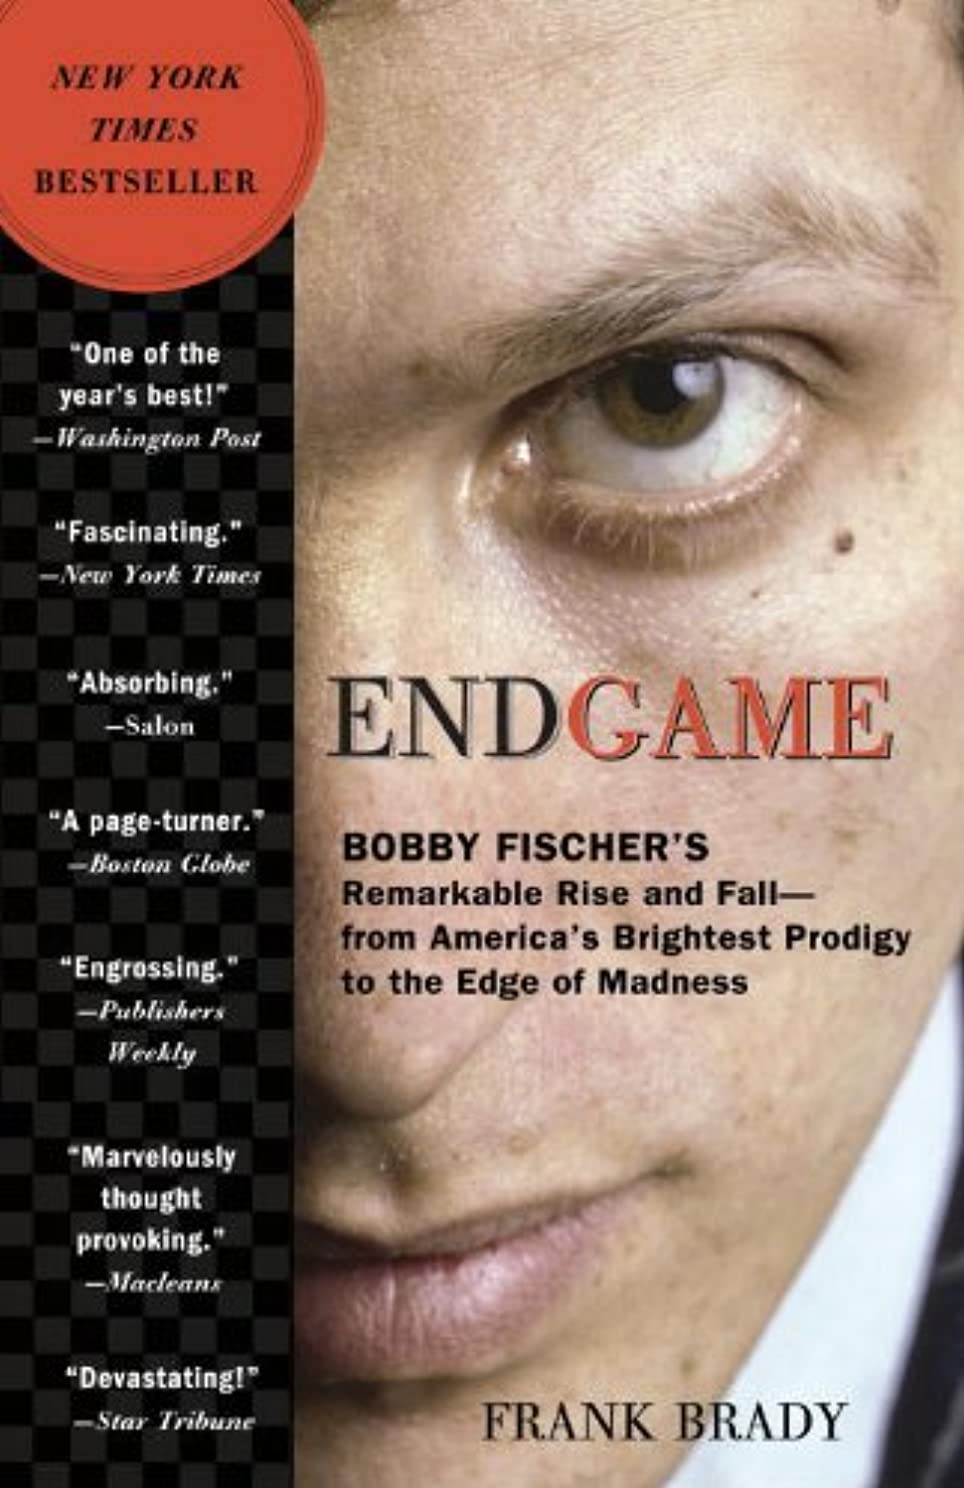 デクリメント不愉快クーポンEndgame: Bobby Fischer's Remarkable Rise and Fall - from America's Brightest Prodigy to the Edge of Madness (English Edition)